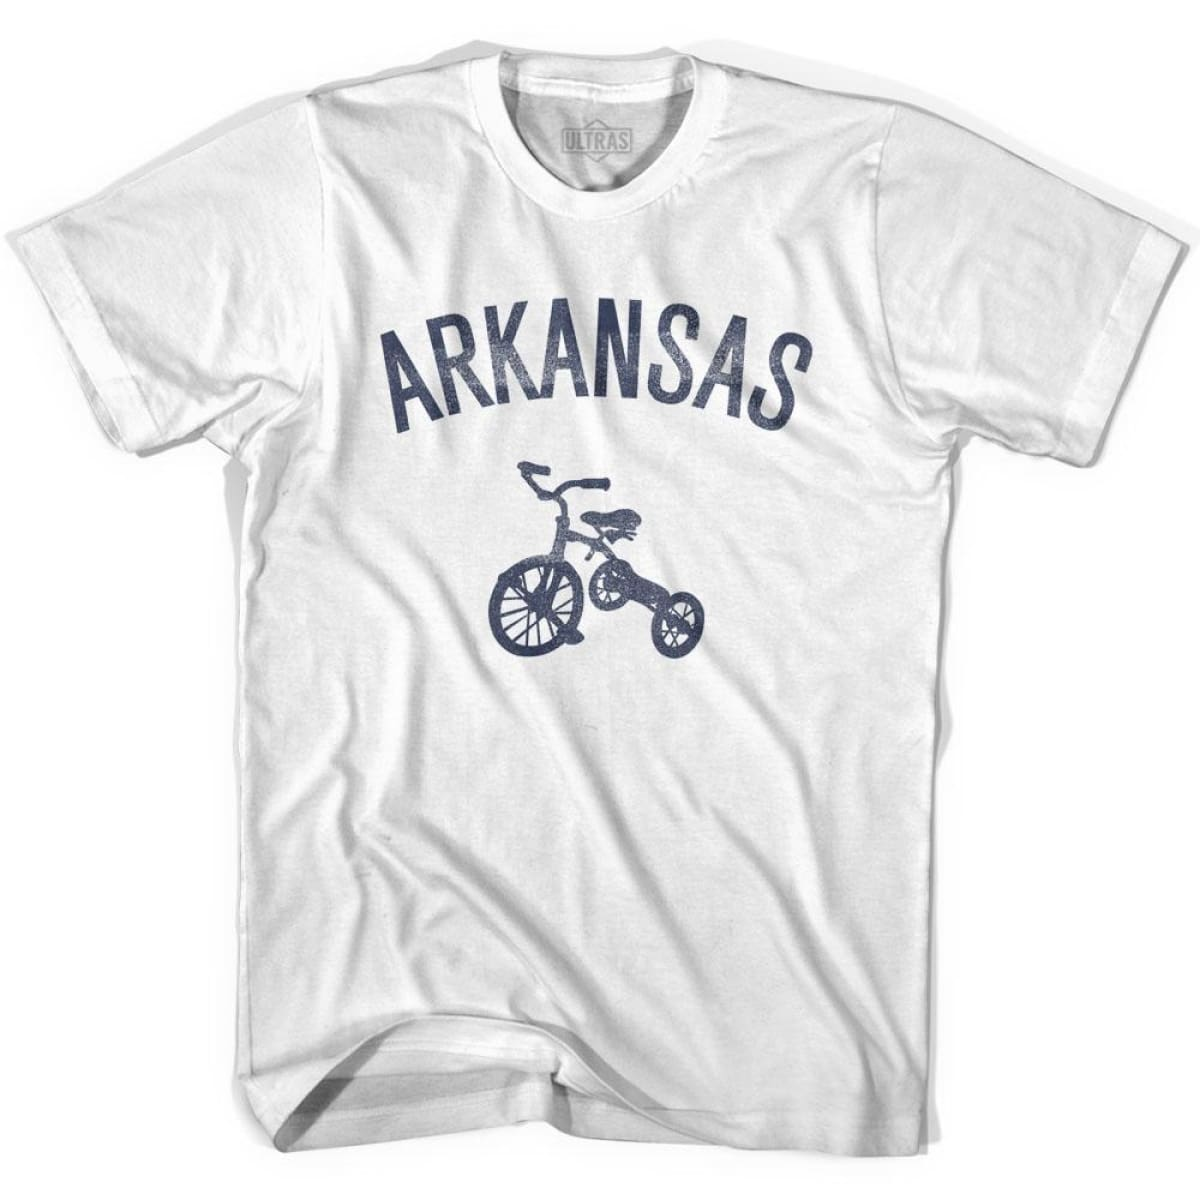 Arkansas State Tricycle Womens Cotton T-shirt - White / Womens Small - Tricycle State